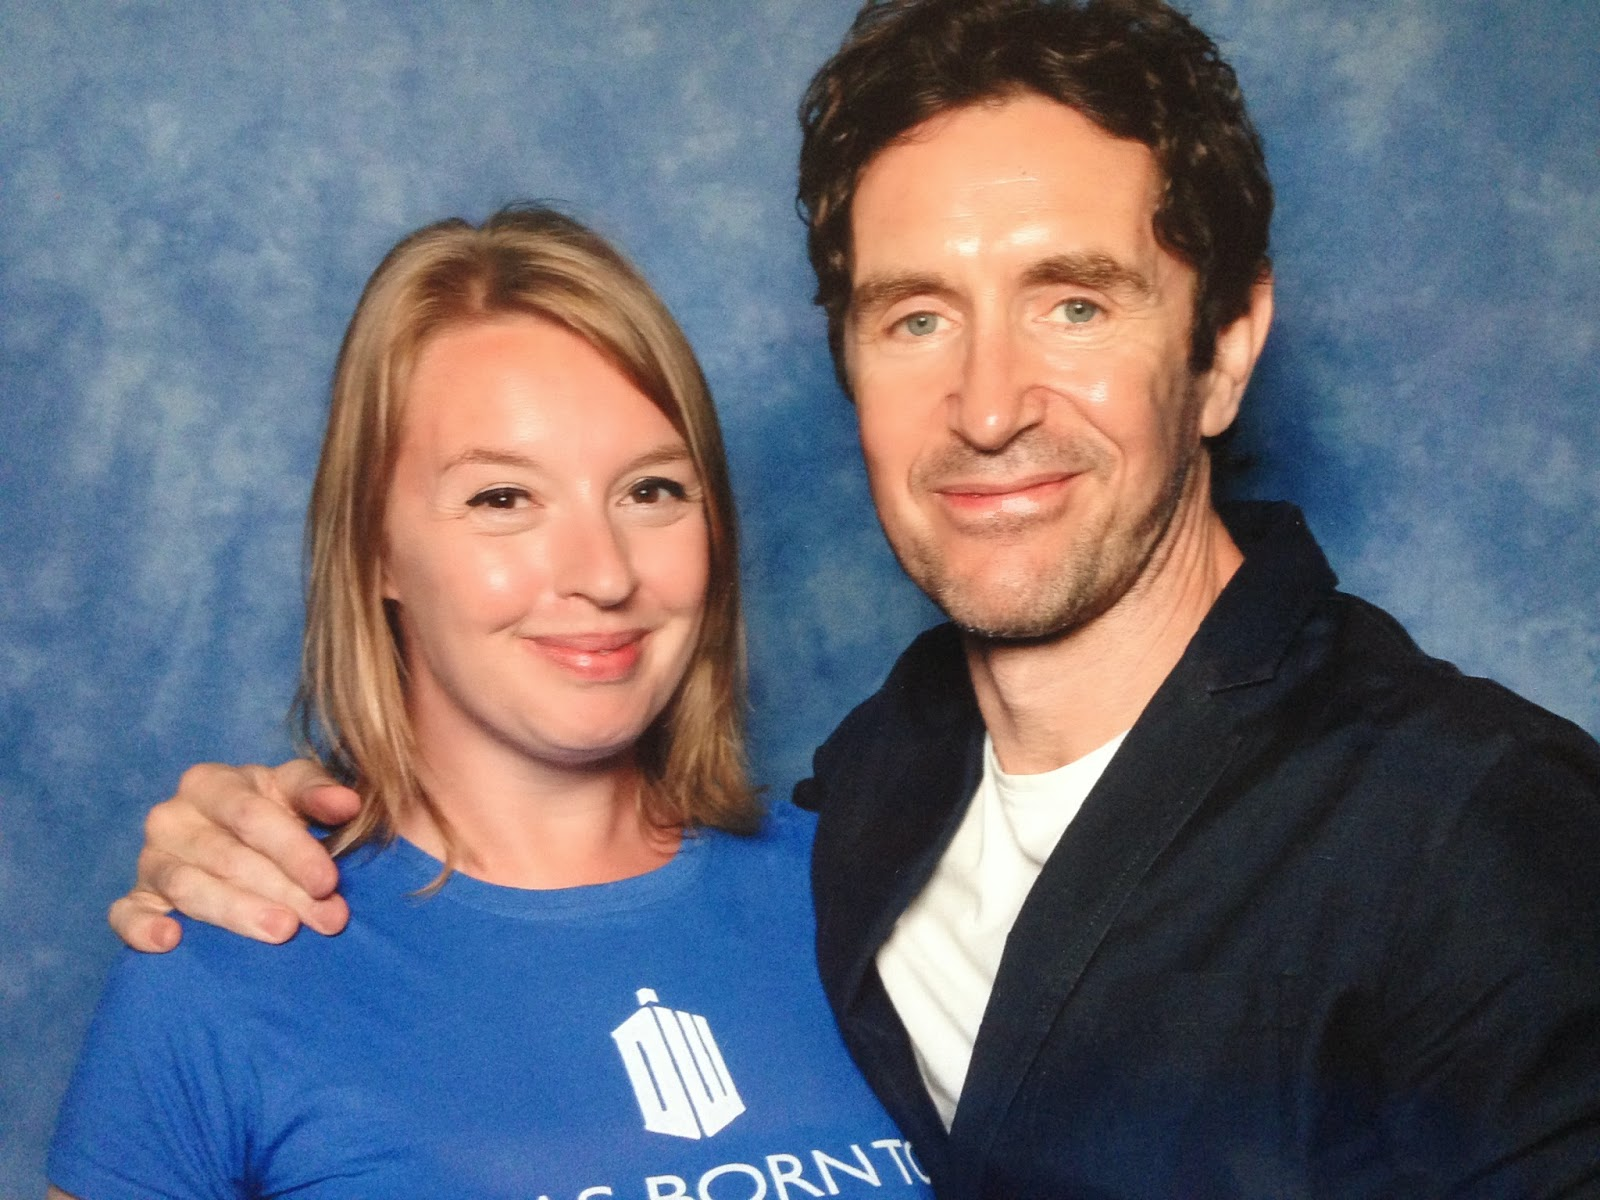 London film and comic con 2014 Paul mcgann